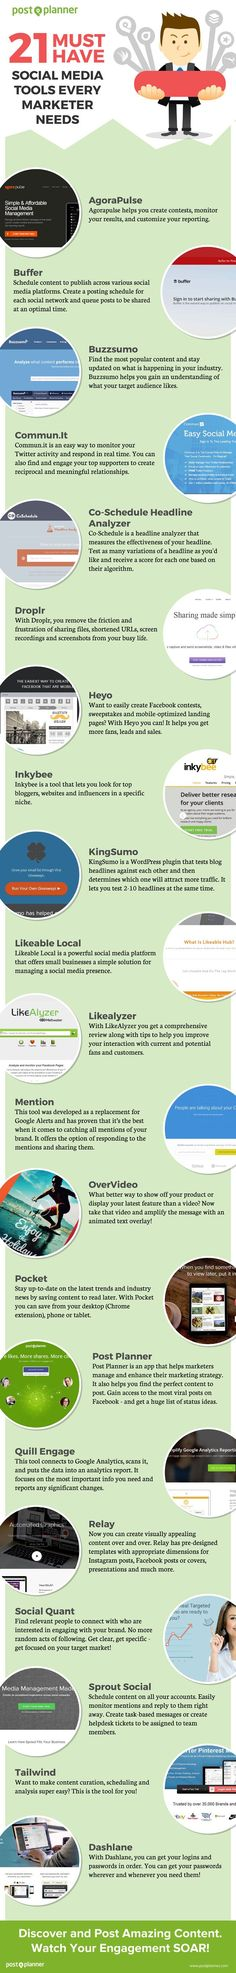 21 Social Media Tools, die man als Manager beachten sollte 21 Must Have #SocialMedia #Tools Every Marketer needs